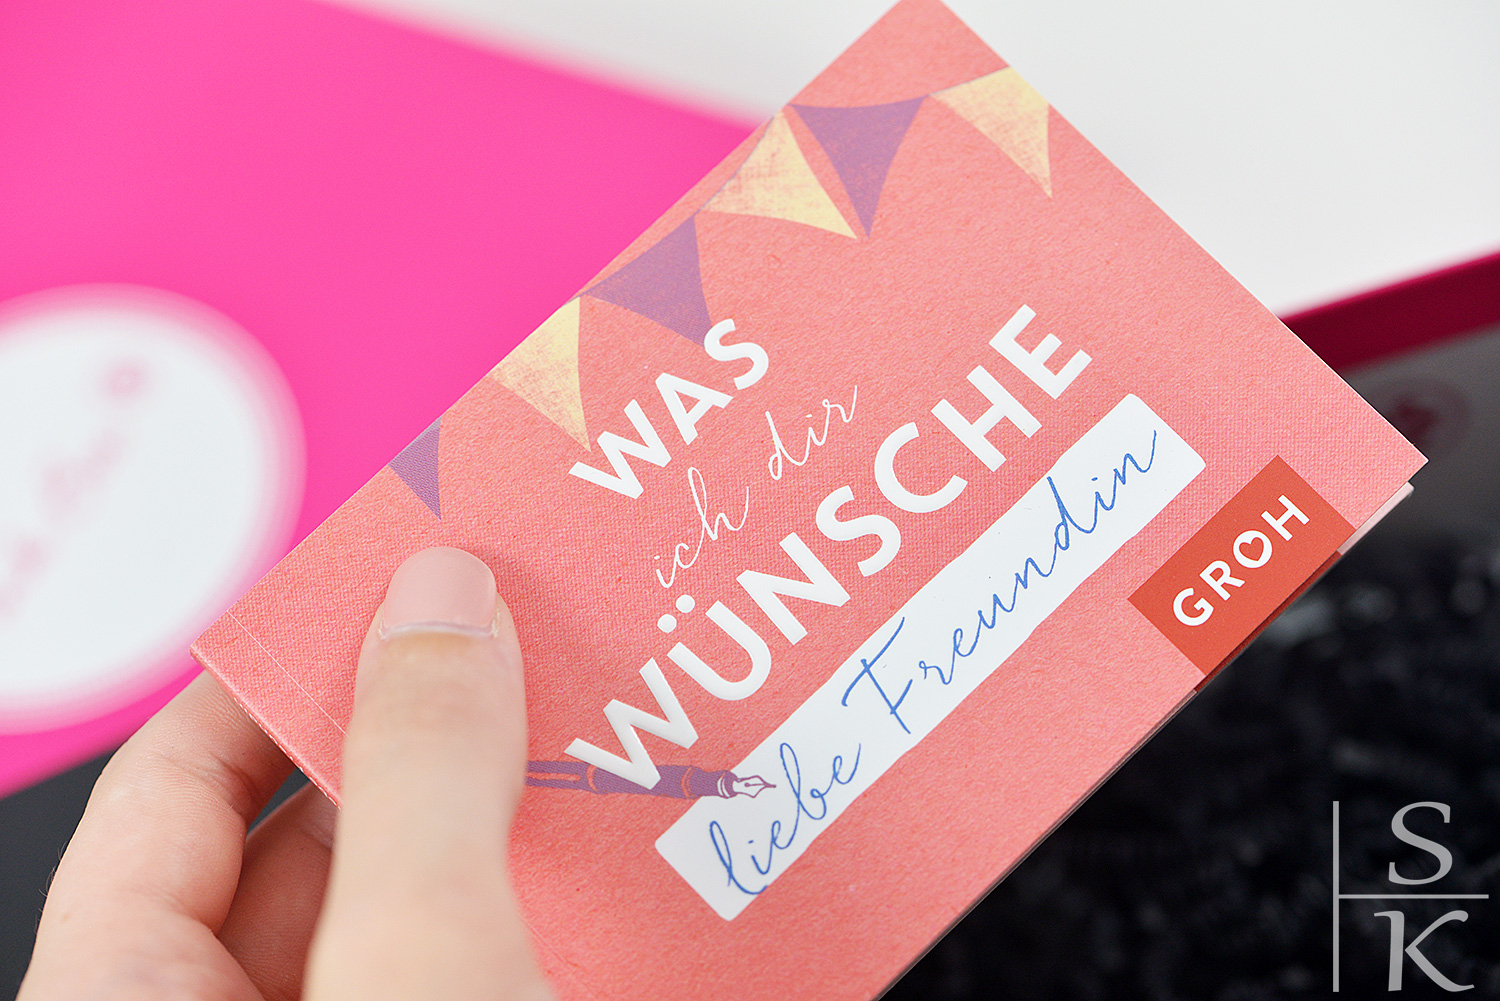 Unboxing Pink Box August 2017 Freundinnentag @Horizont-Blog, Saskia-Katharina Most